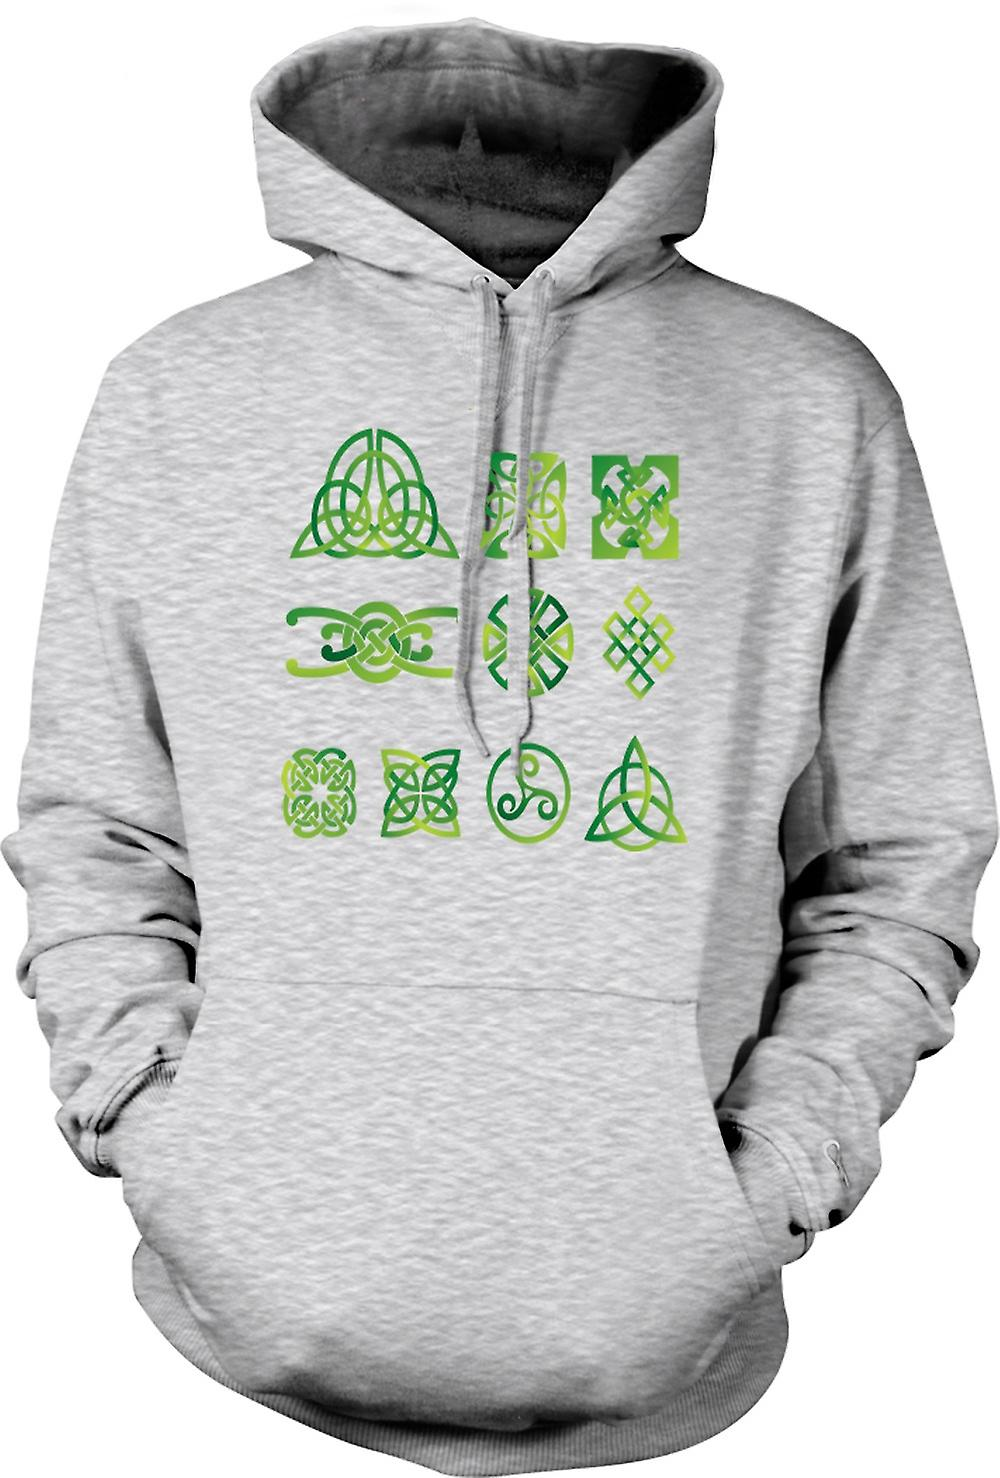 Mens Hoodie - Celtic Tribal Tattoo Designs